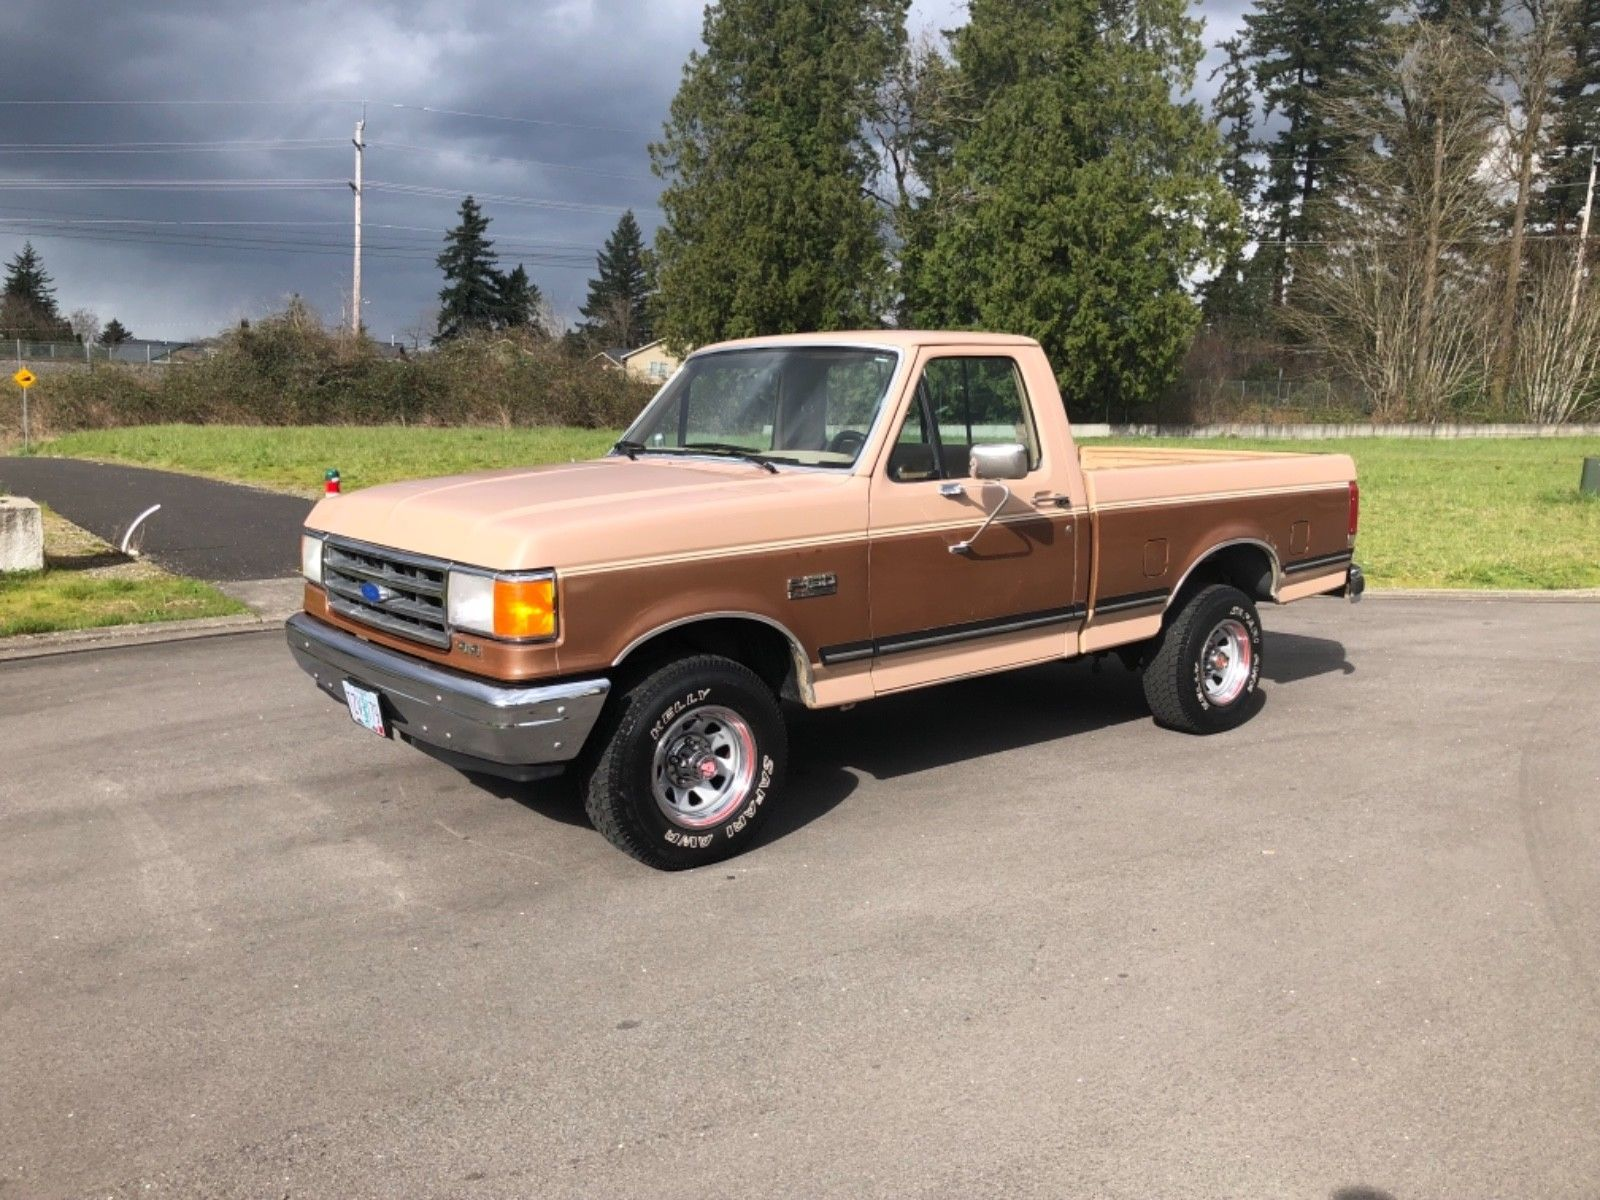 1989 ford f 150 1989 ford f 150 4x4 low miles only 89 k. Black Bedroom Furniture Sets. Home Design Ideas